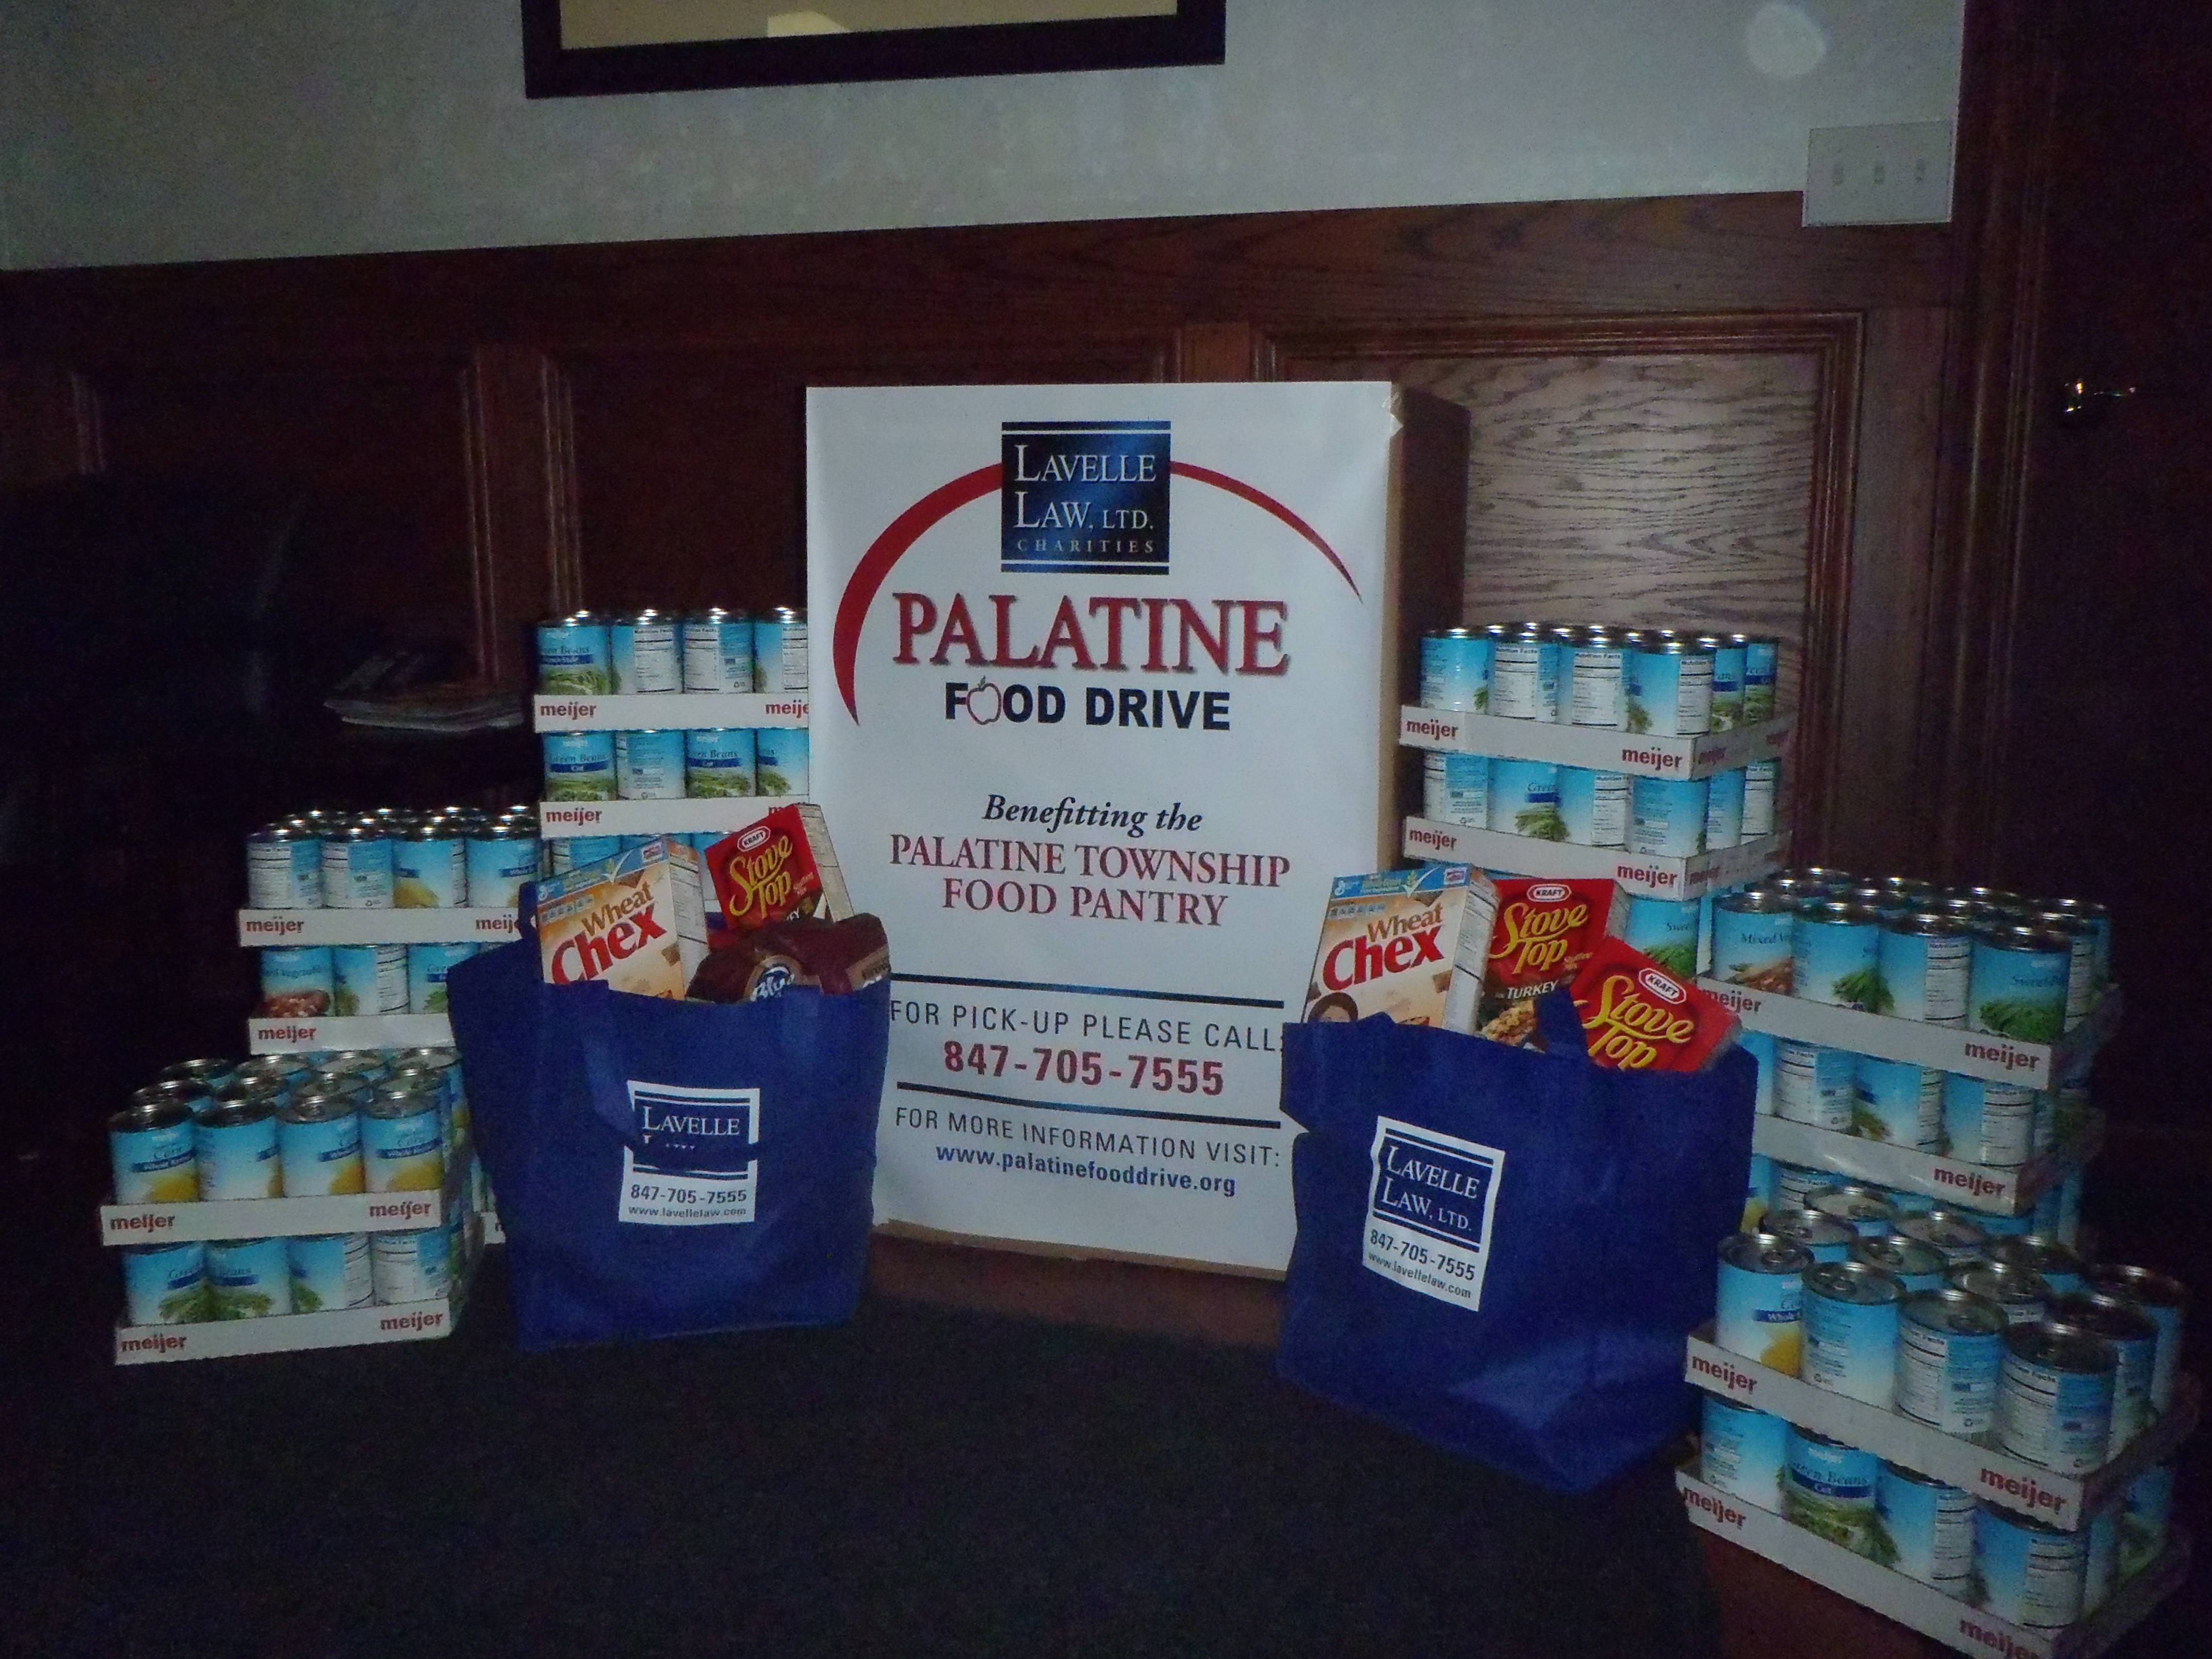 Lavelle Law Charities collection boxes are set up around Palatine to receive donations for the Palatine Food Pantry.